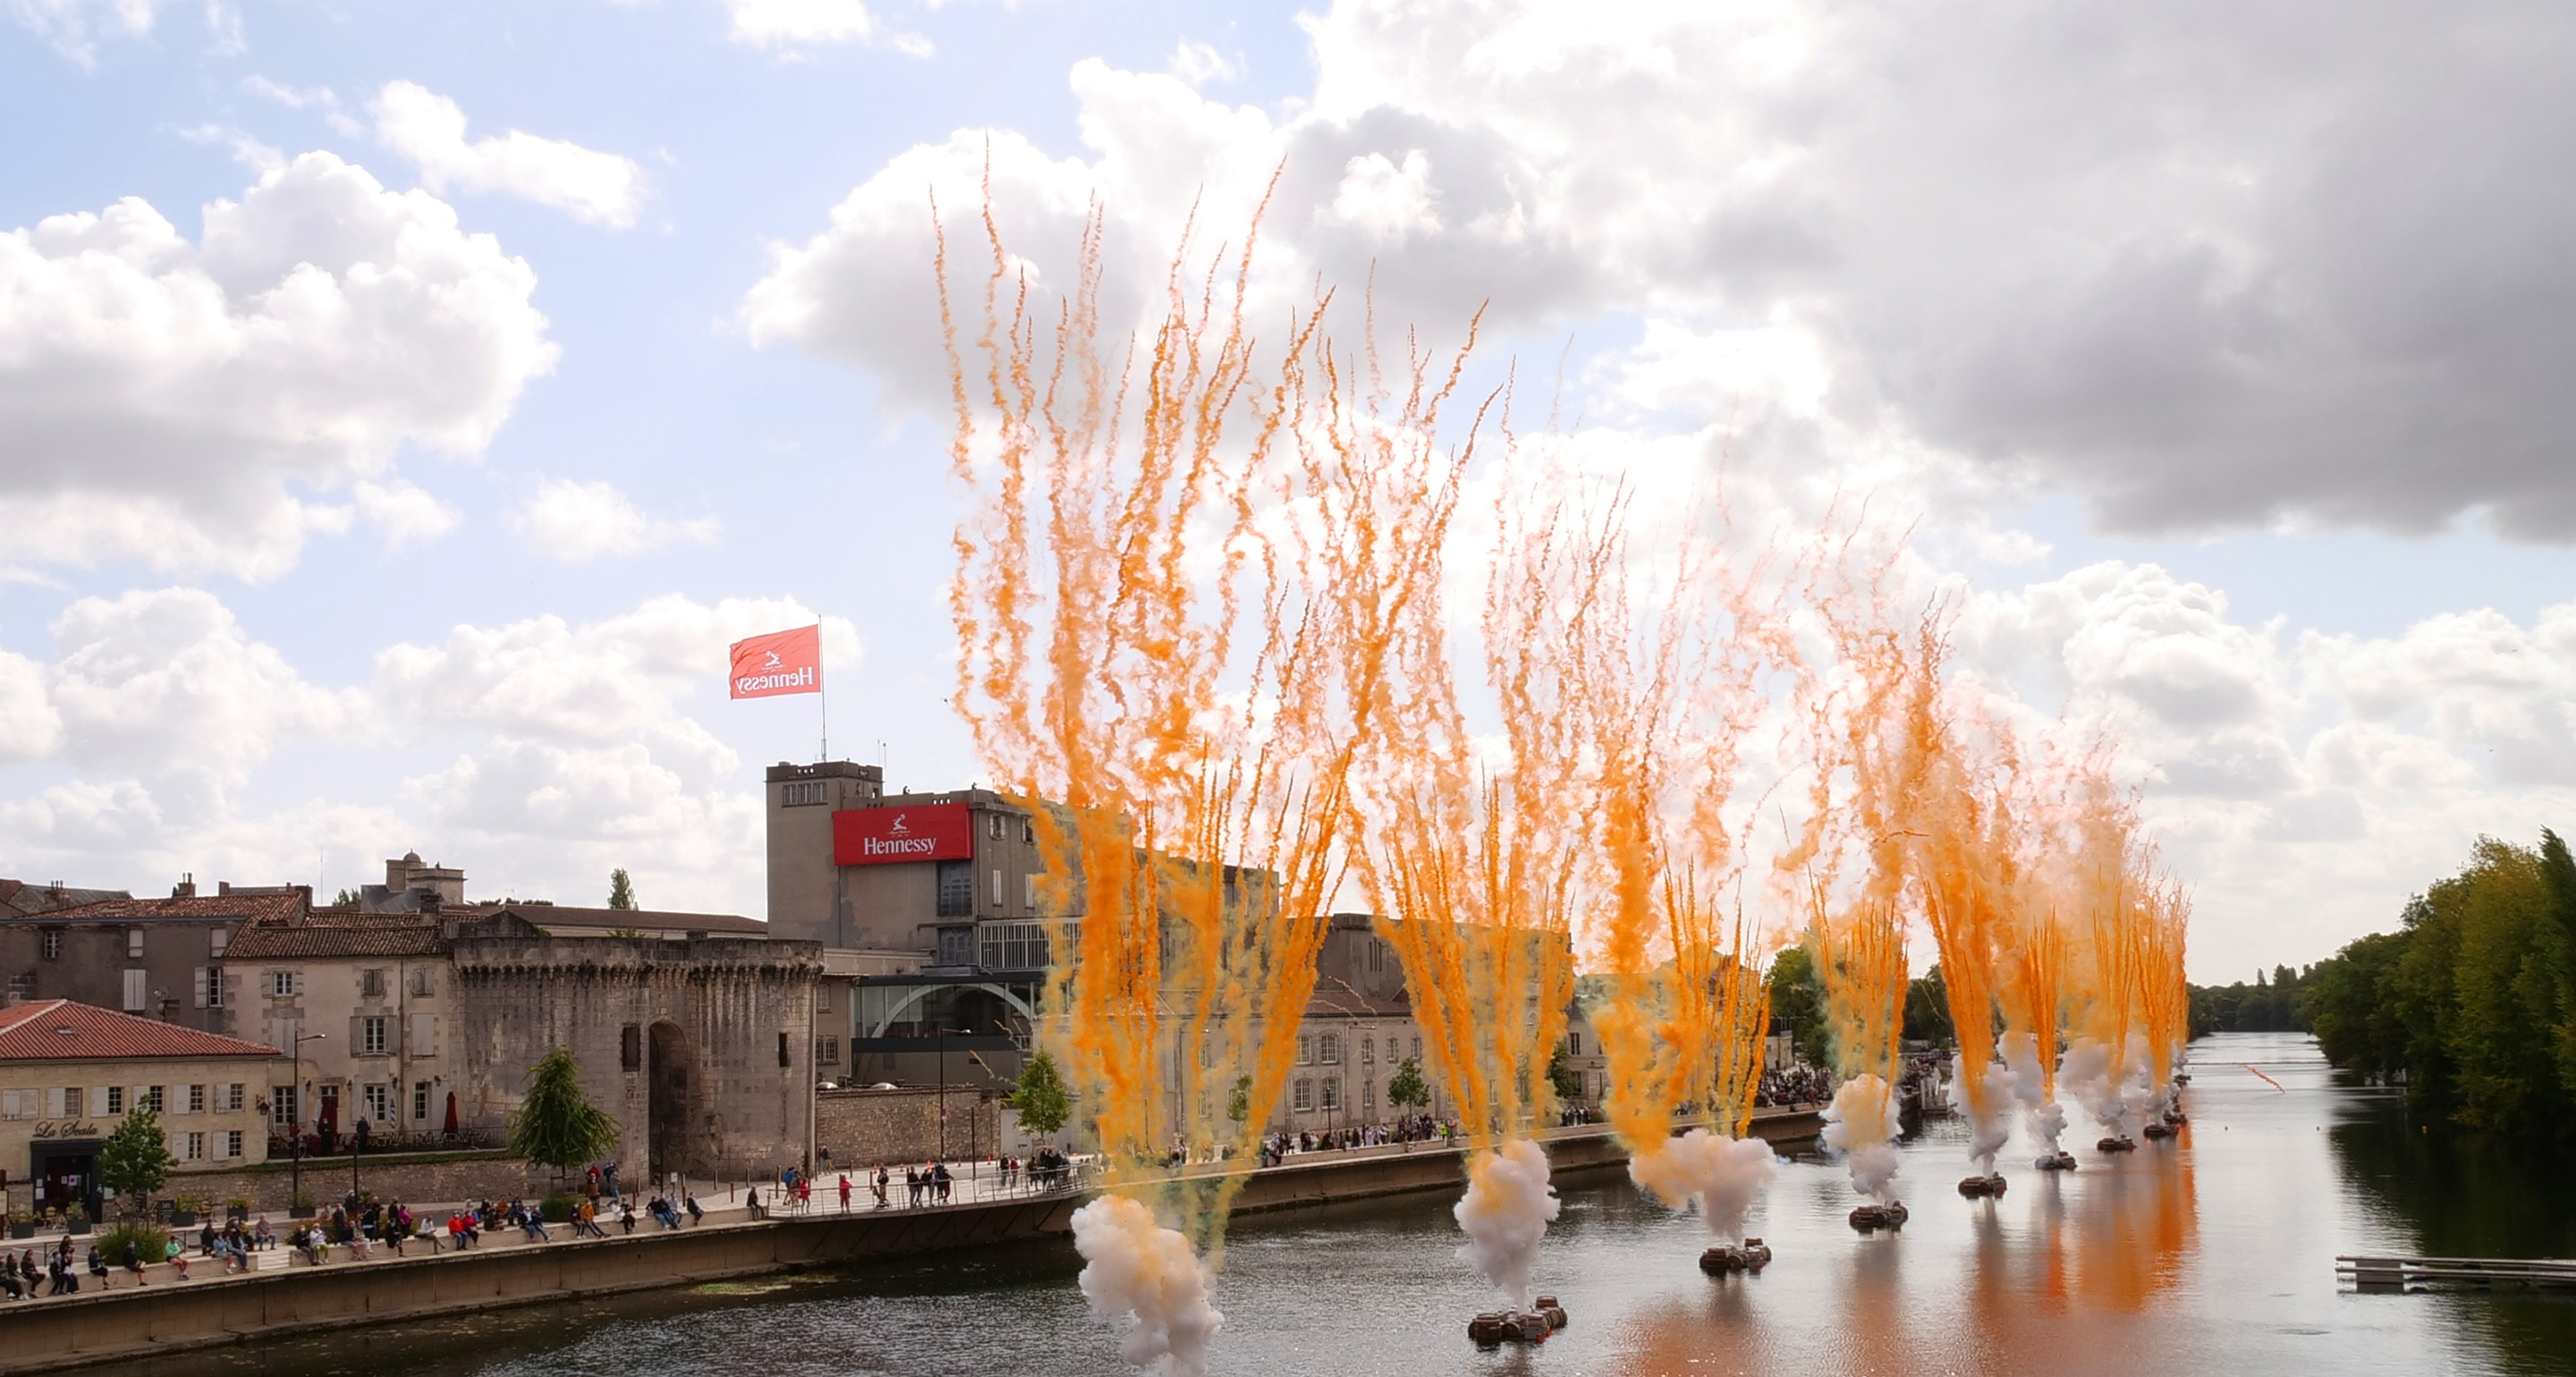 CAI GUO-QIANG LIVE EVENT IN COGNAC, FRANCE